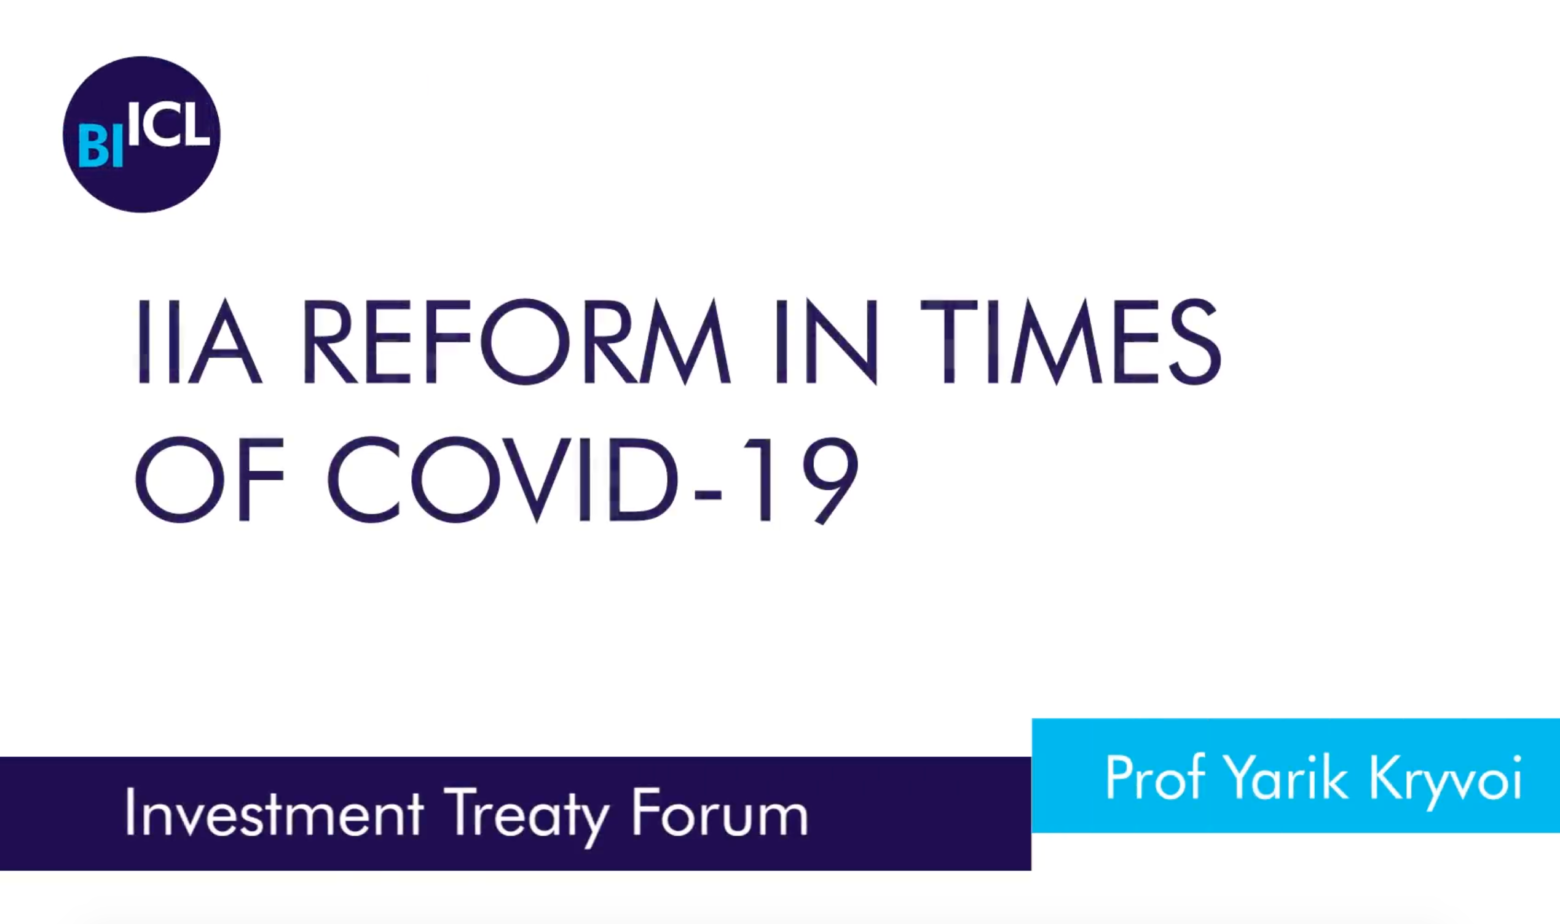 IIA Reform in Times of COVID-19: corruption, corporate restructuring and capacity building (video)